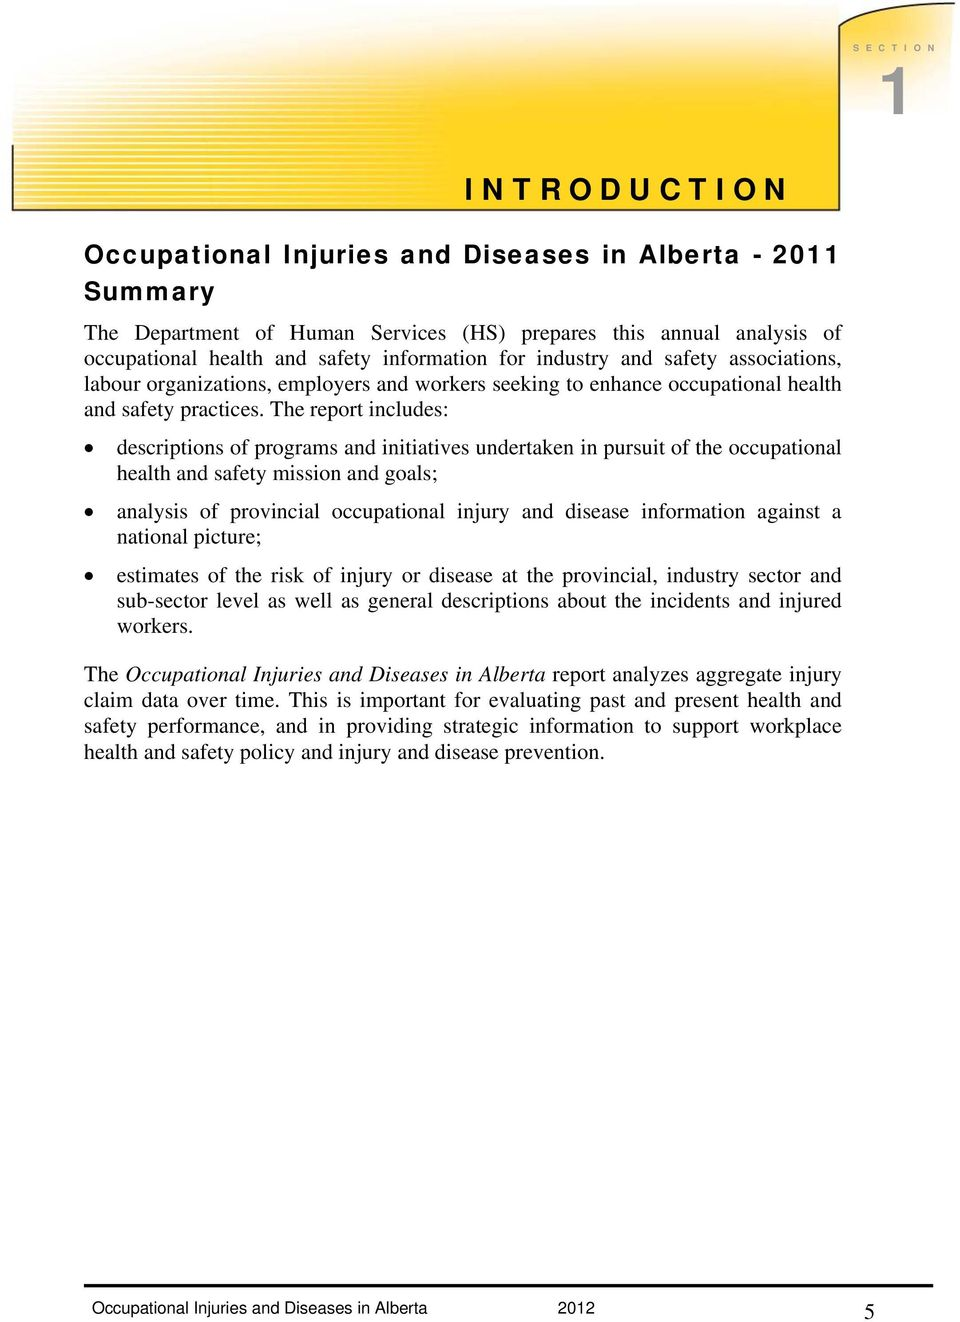 The report includes: descriptions of programs and initiatives undertaken in pursuit of the occupational health and safety mission and goals; analysis of provincial occupational injury and disease